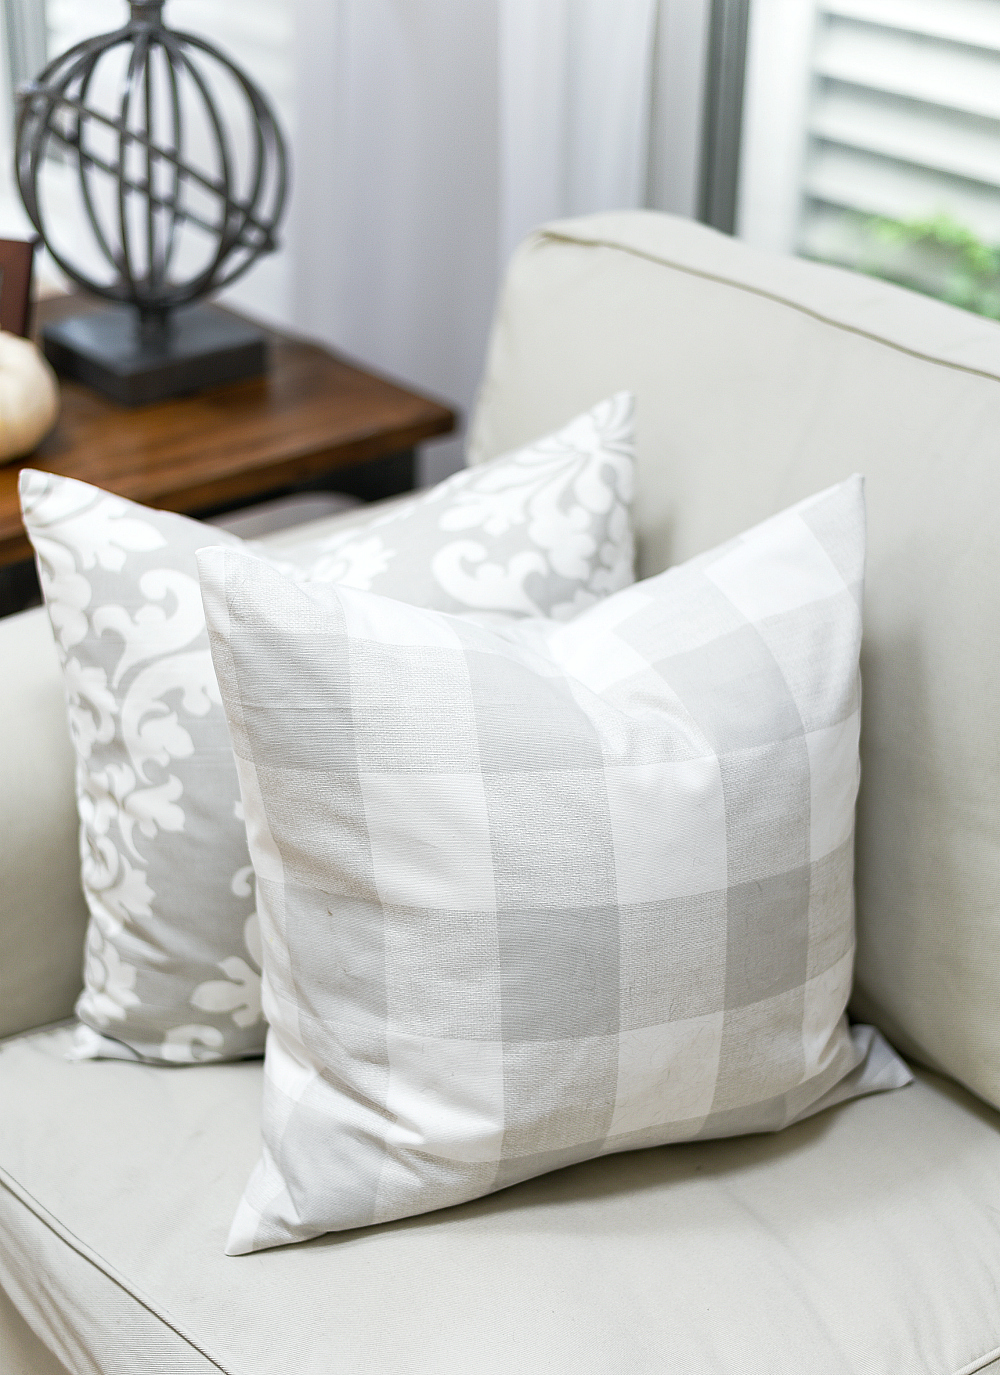 Greige Fabric - Greige Pillows - Gray Neutral Fabric